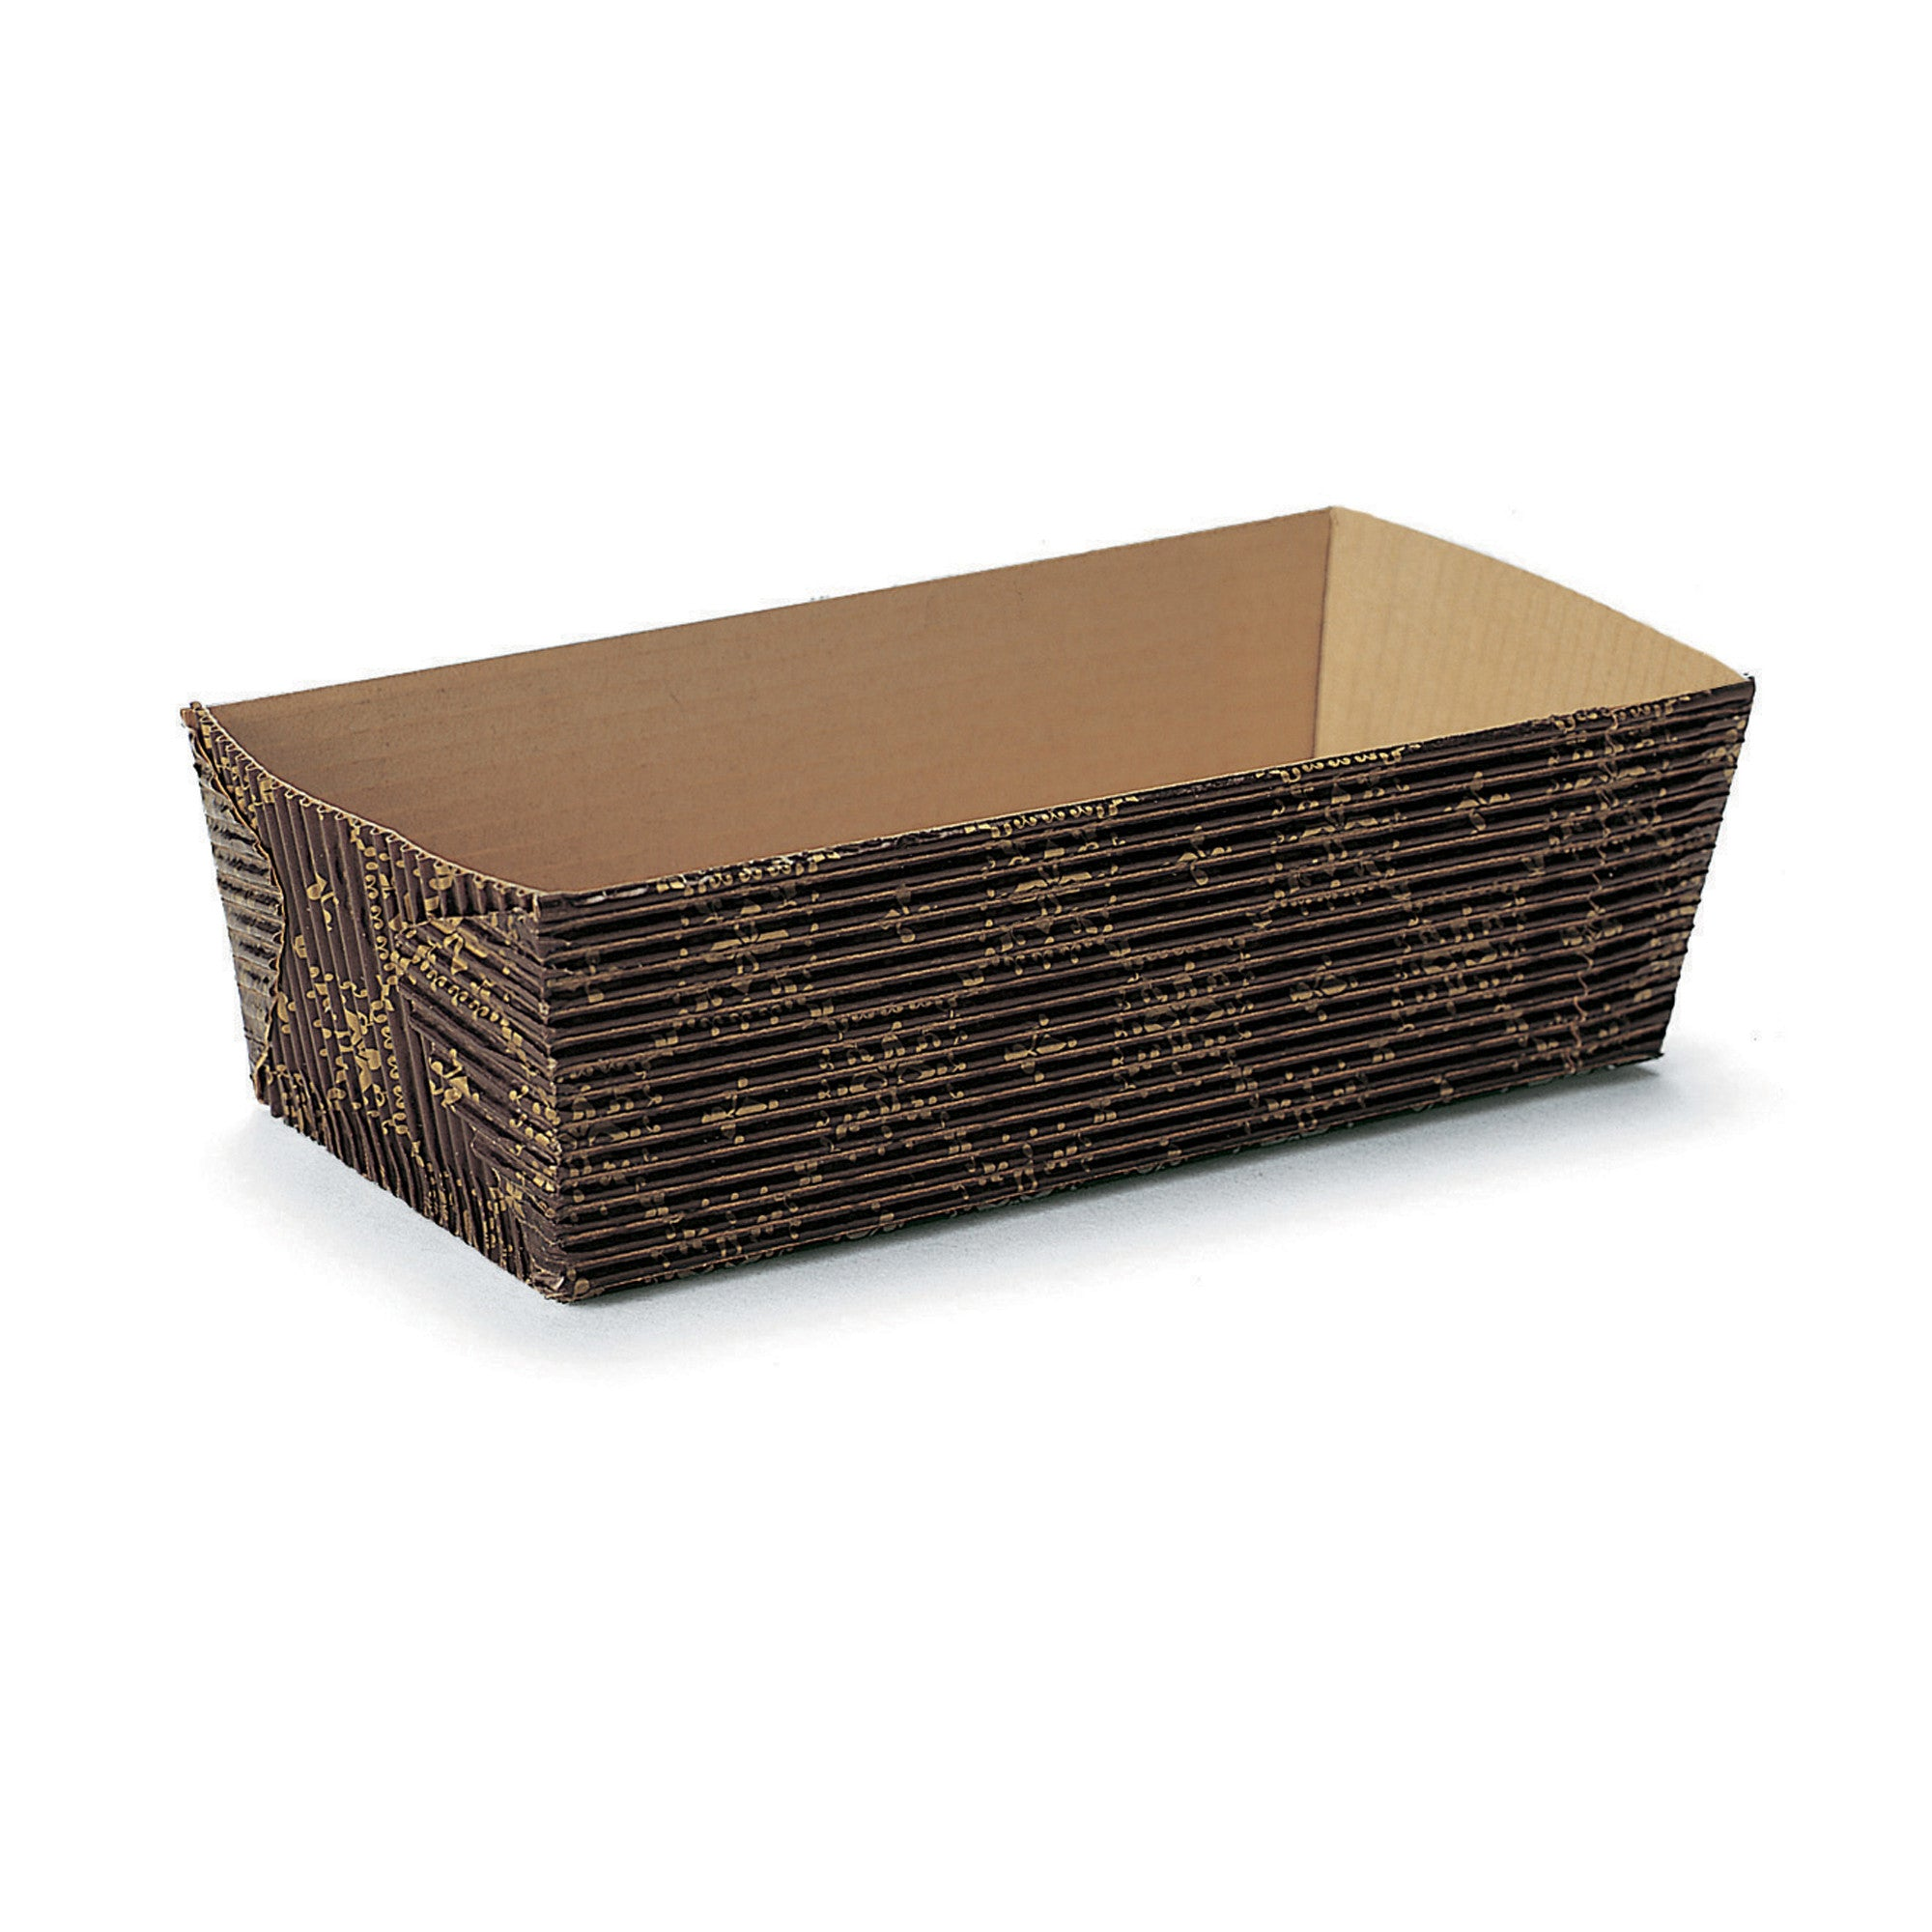 Rectangular Loaf Baking Pans, Black Crest - Paper Bake Shop